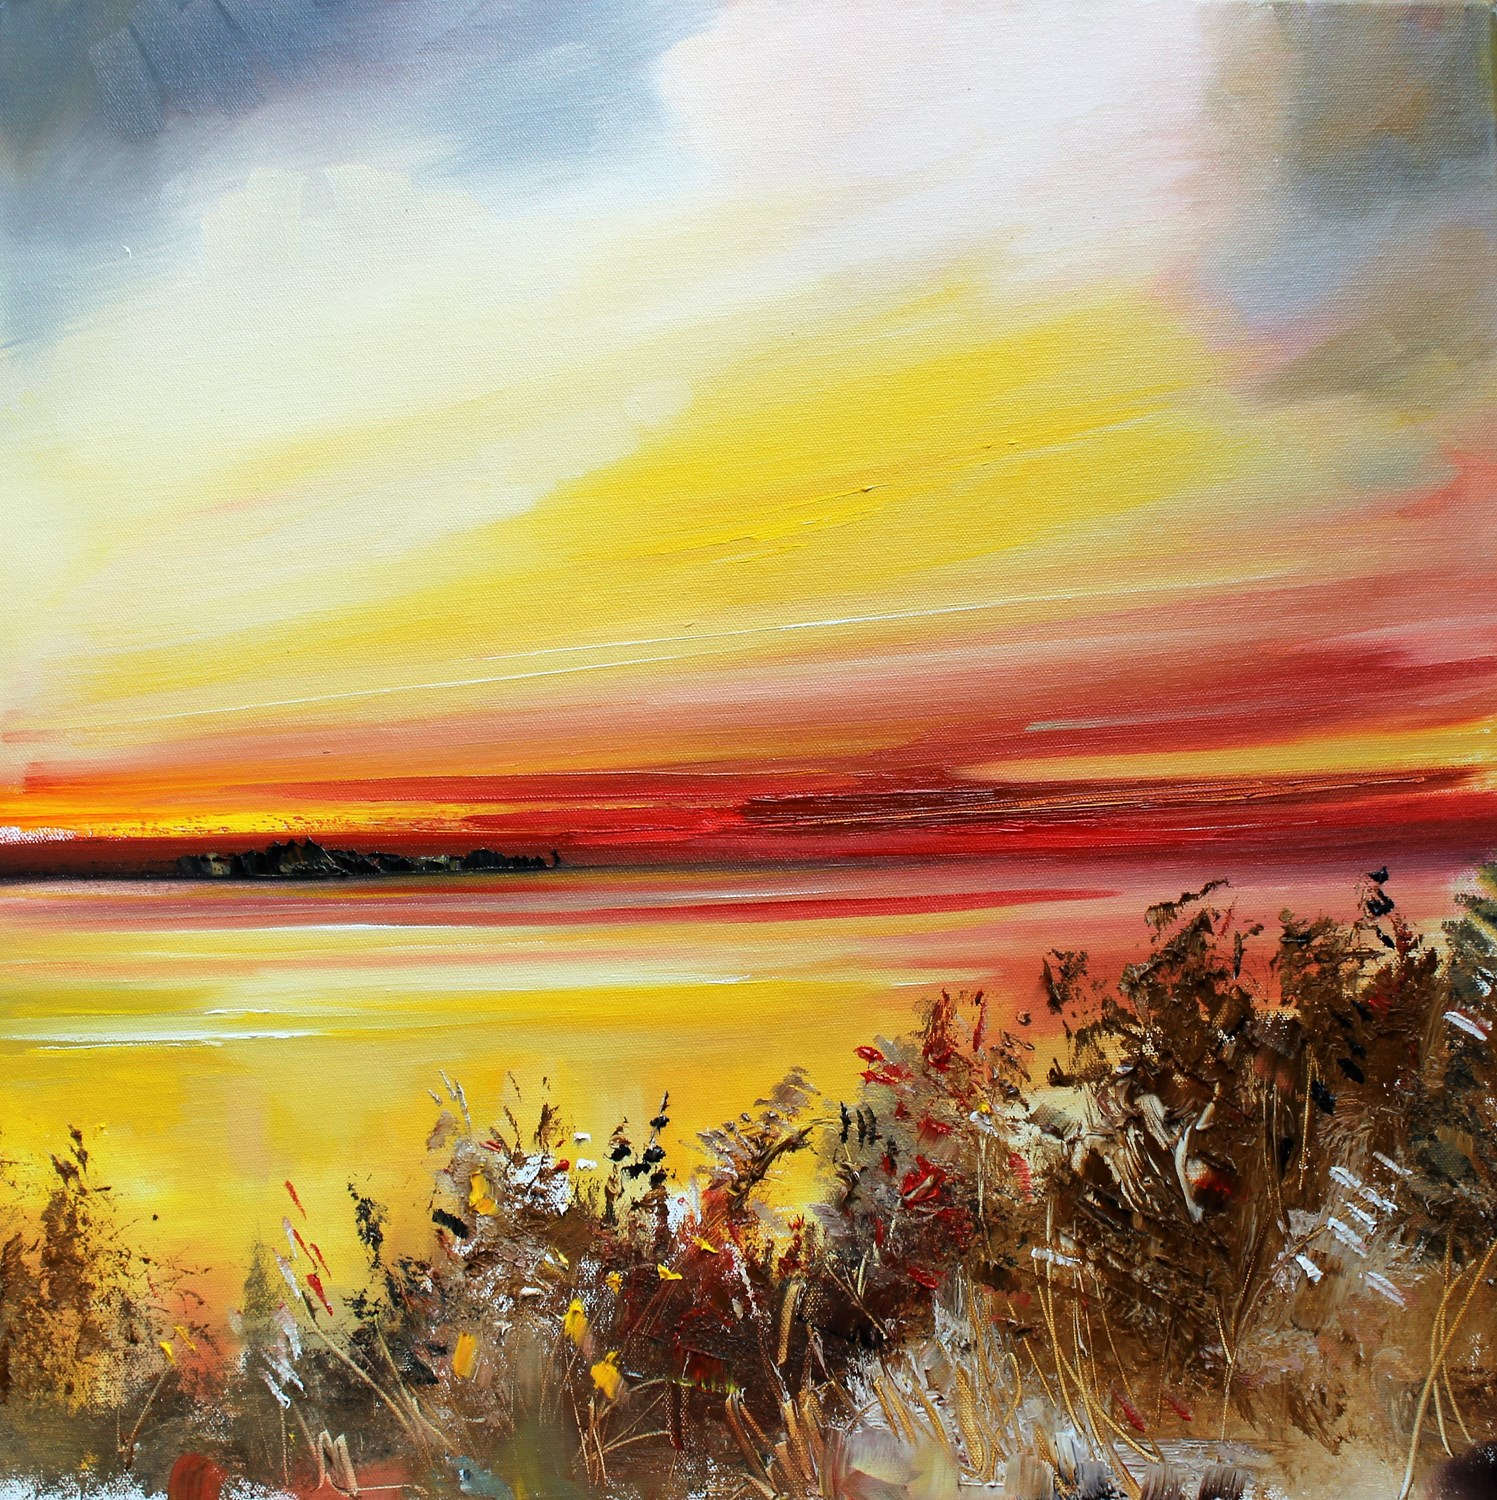 'Warm Afterglow' by artist Rosanne Barr